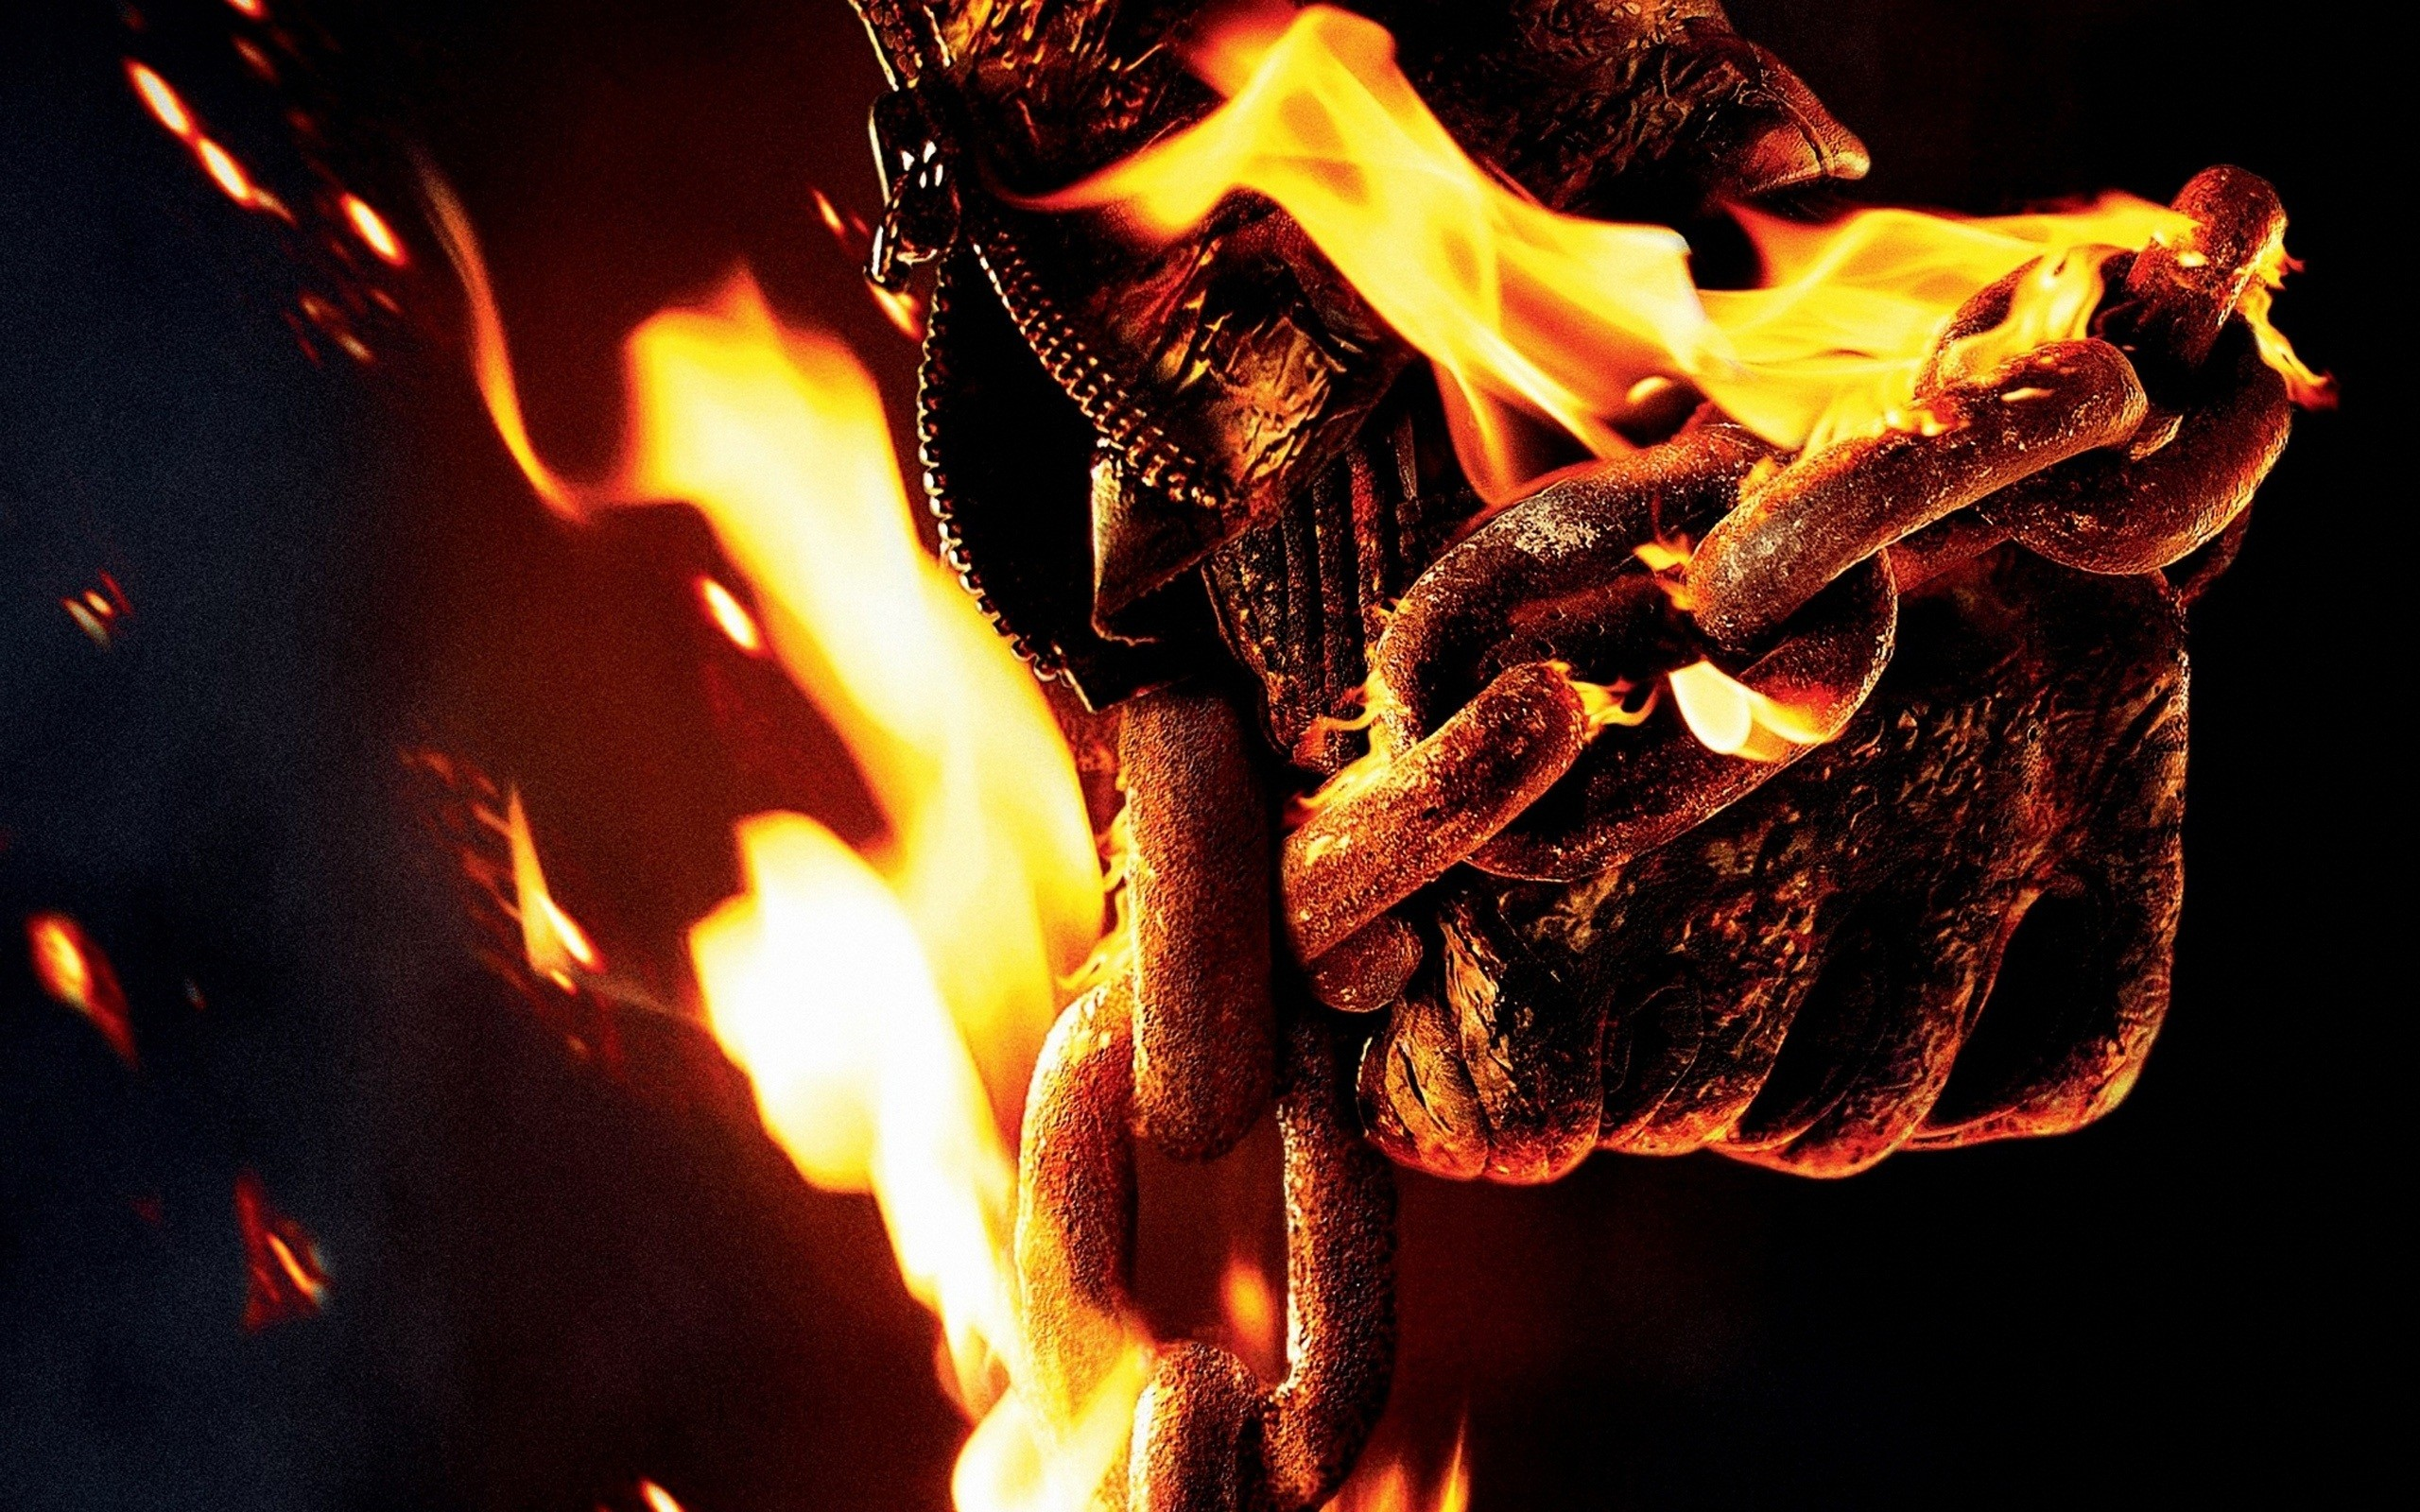 Latest Ghost Rider 2 Hd Desktop Wallpapers   ImgHD Browse and 2560x1600